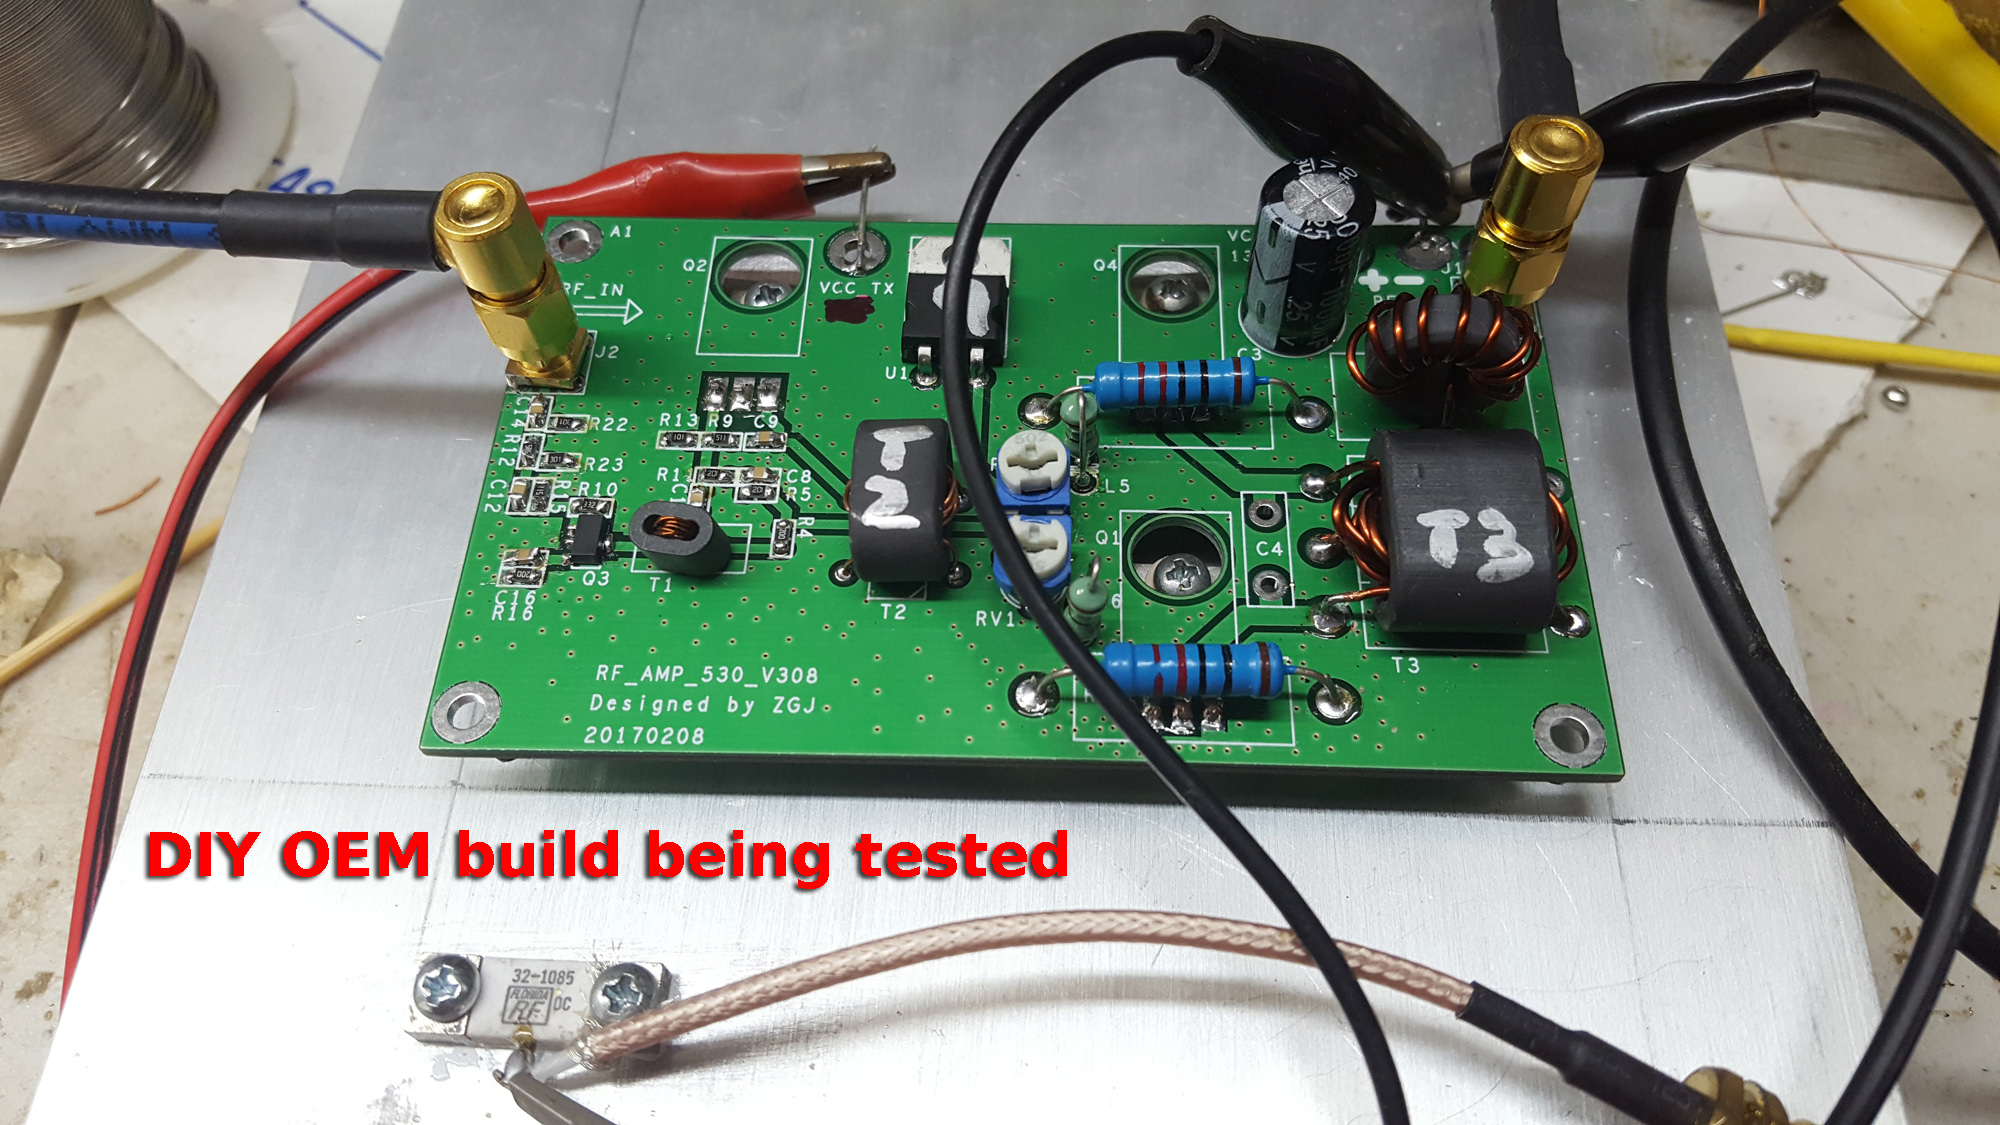 45w Rf Ssb Cw Amp Ebay Diy Build 55w Upgrade 100w With Pcb Power Amplifier Circuit Download